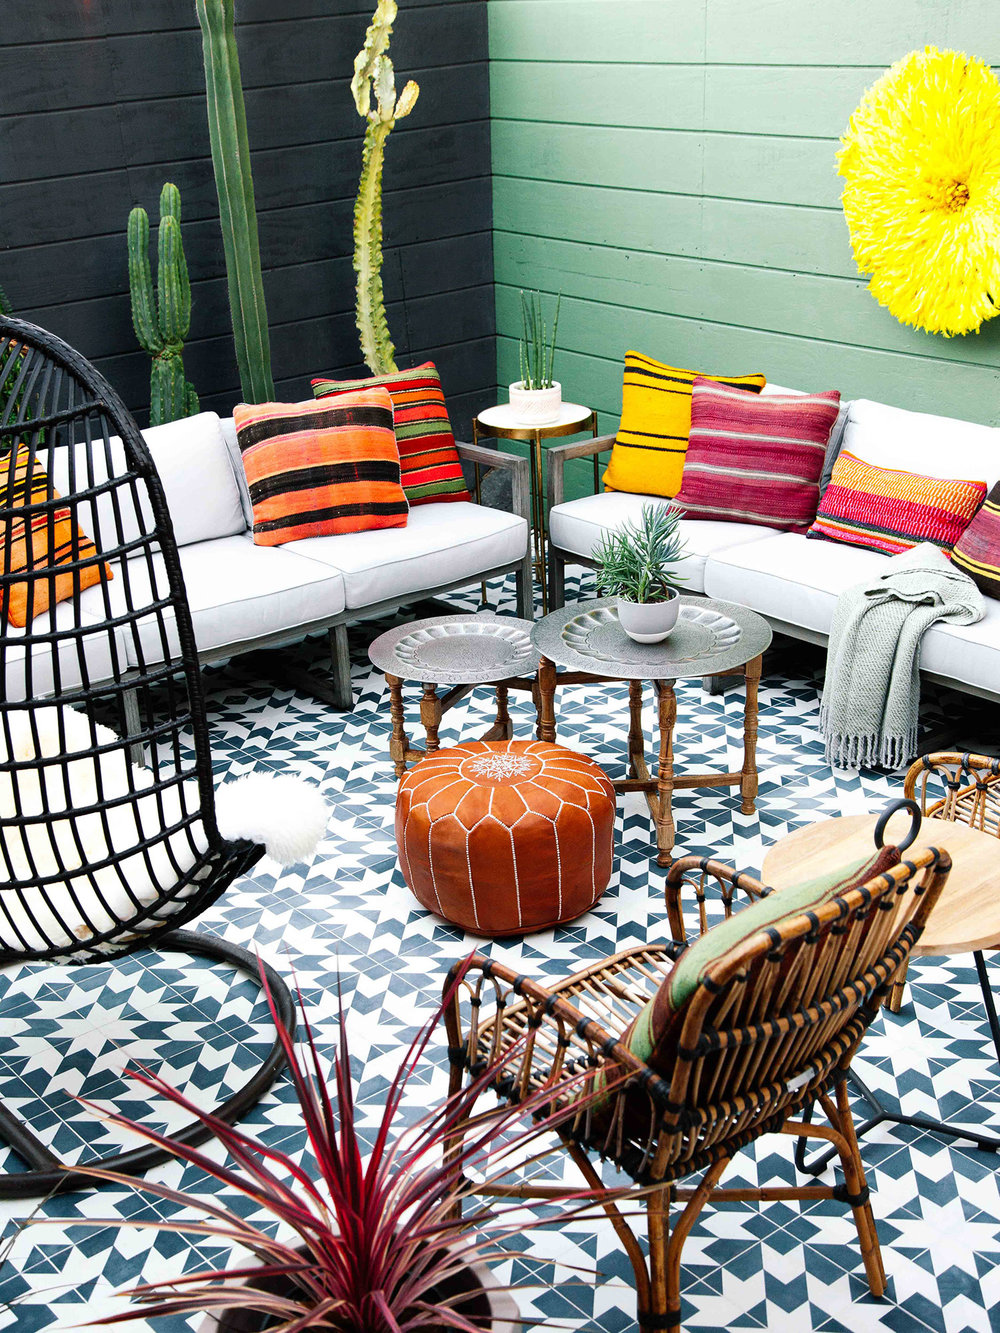 Old Brand New's eclectic boho outdoor patio makeover from the One Room Challenge (Fall 2017). I love the bright colors, planked walls, and Moroccan inspired tile!